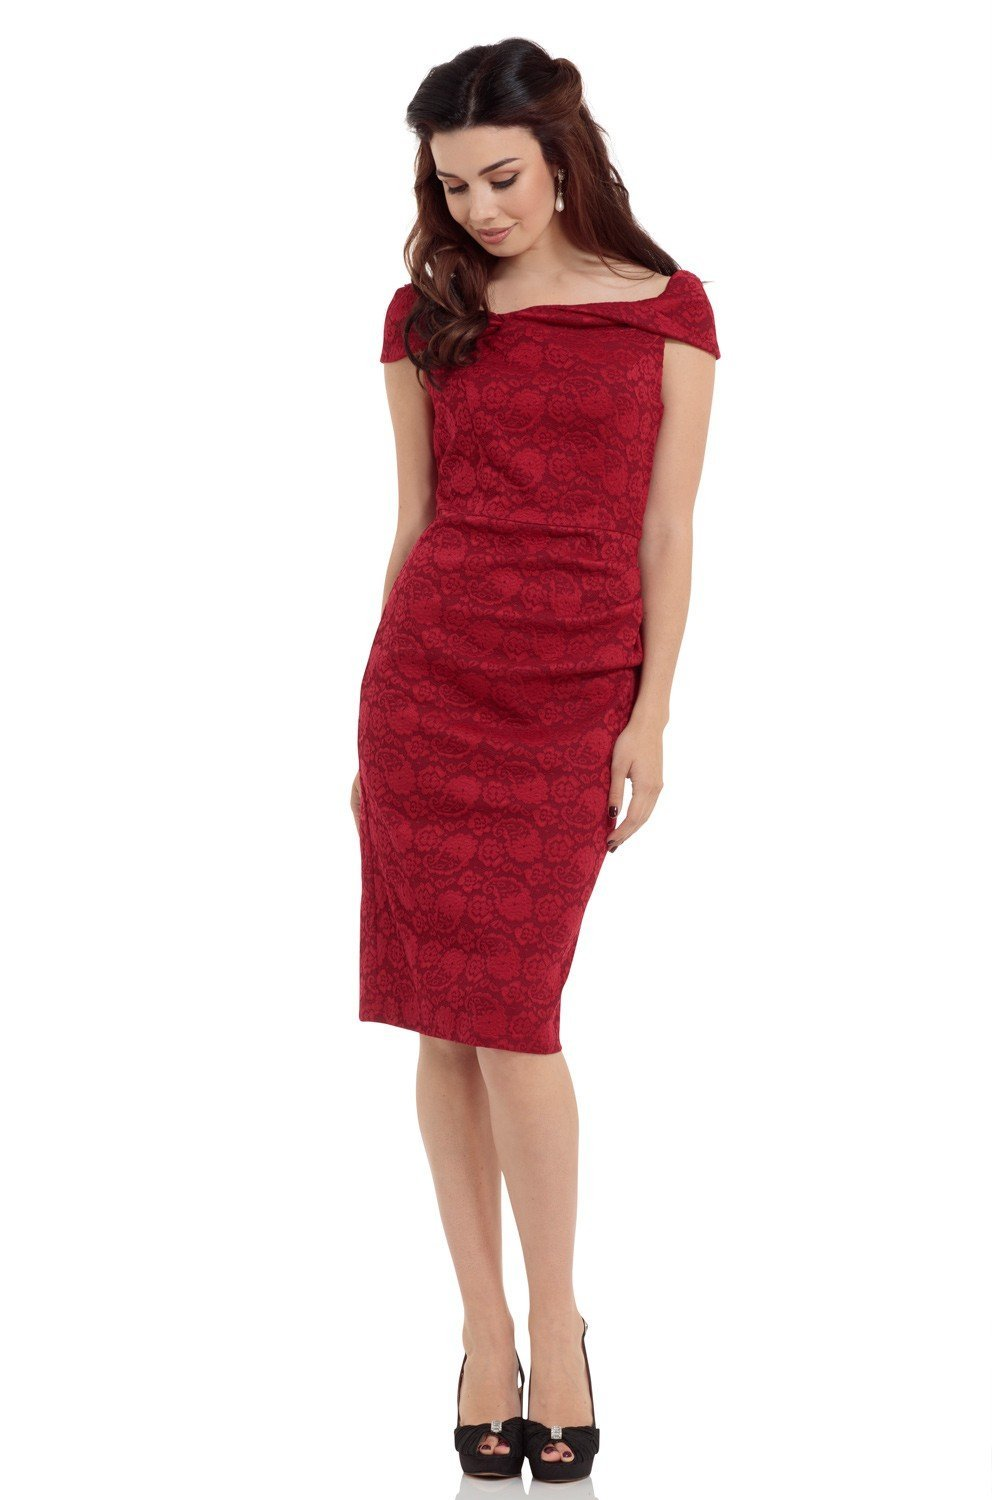 Voodoo Vixen Maisie Dress (Red) - Bohemian Finds